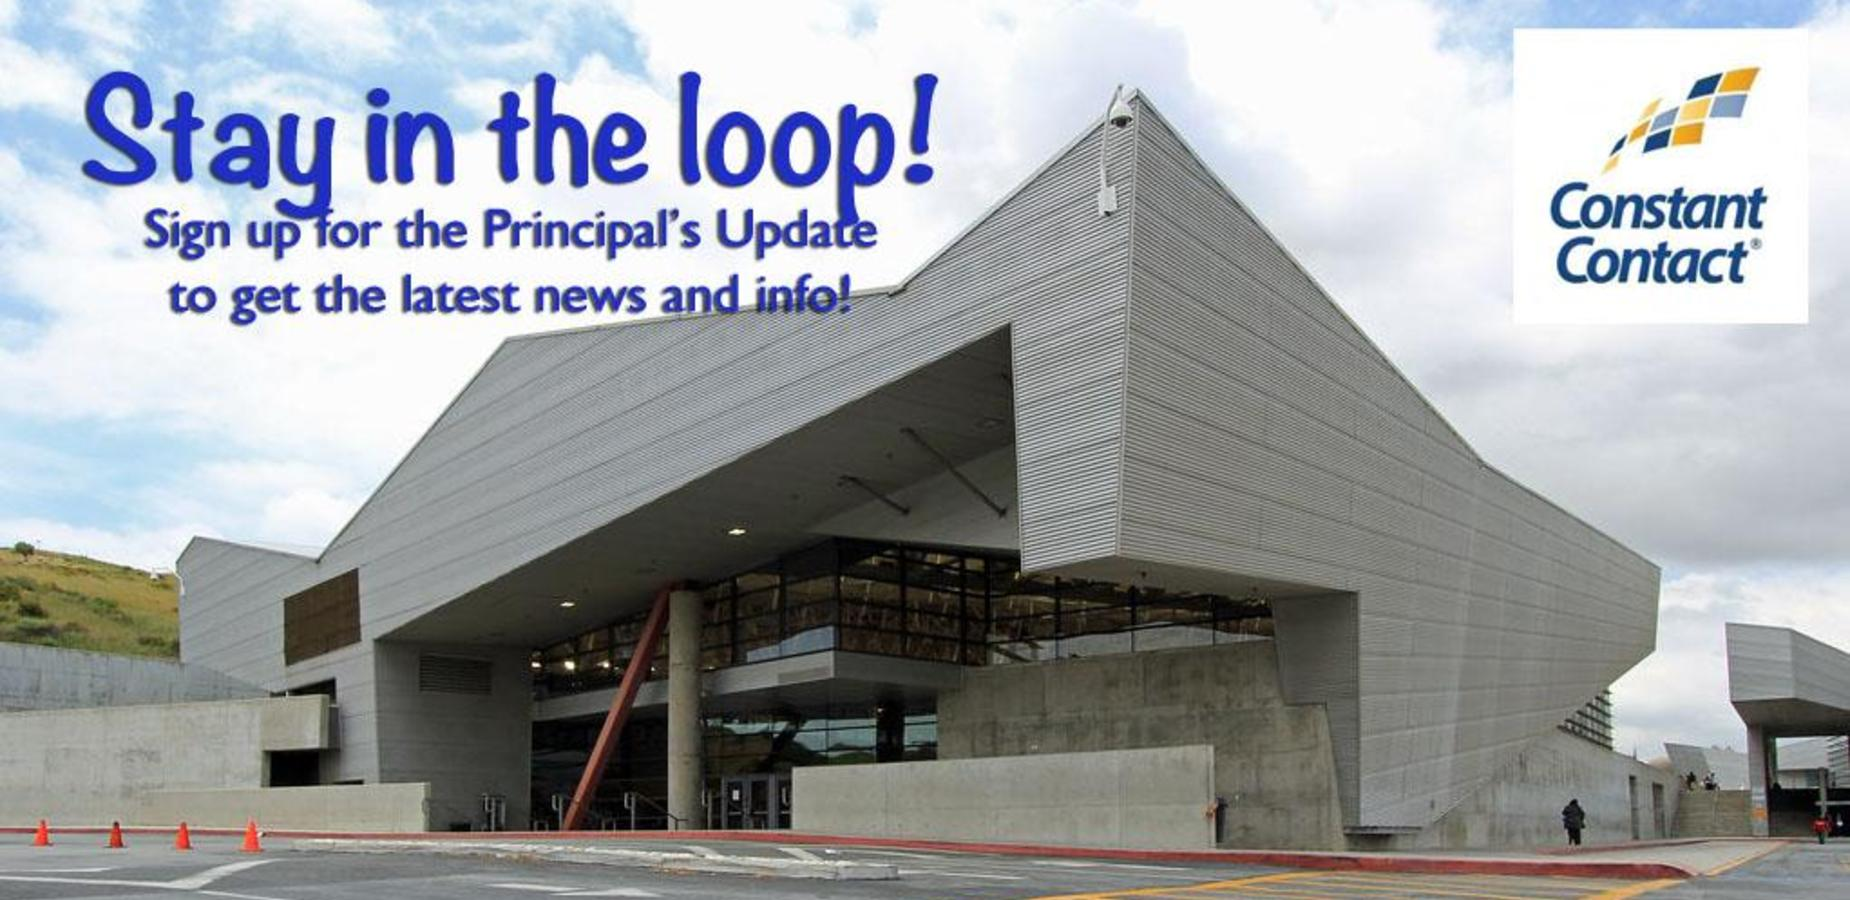 Sign up for Principal's Update